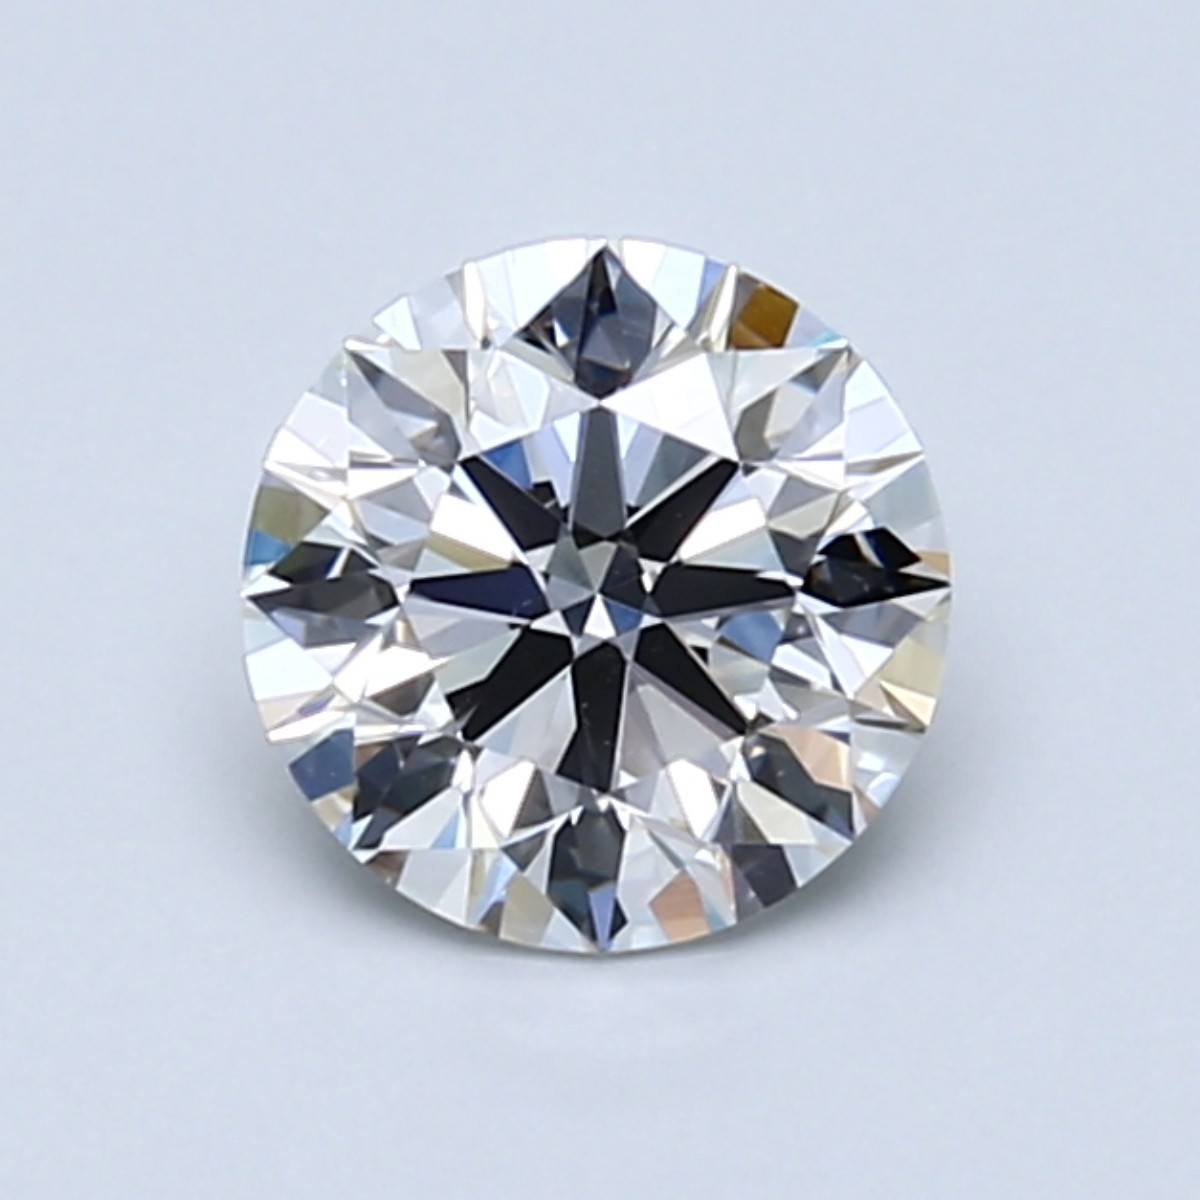 Round 1.03 Carat G Color VS2 Clarity For Sale